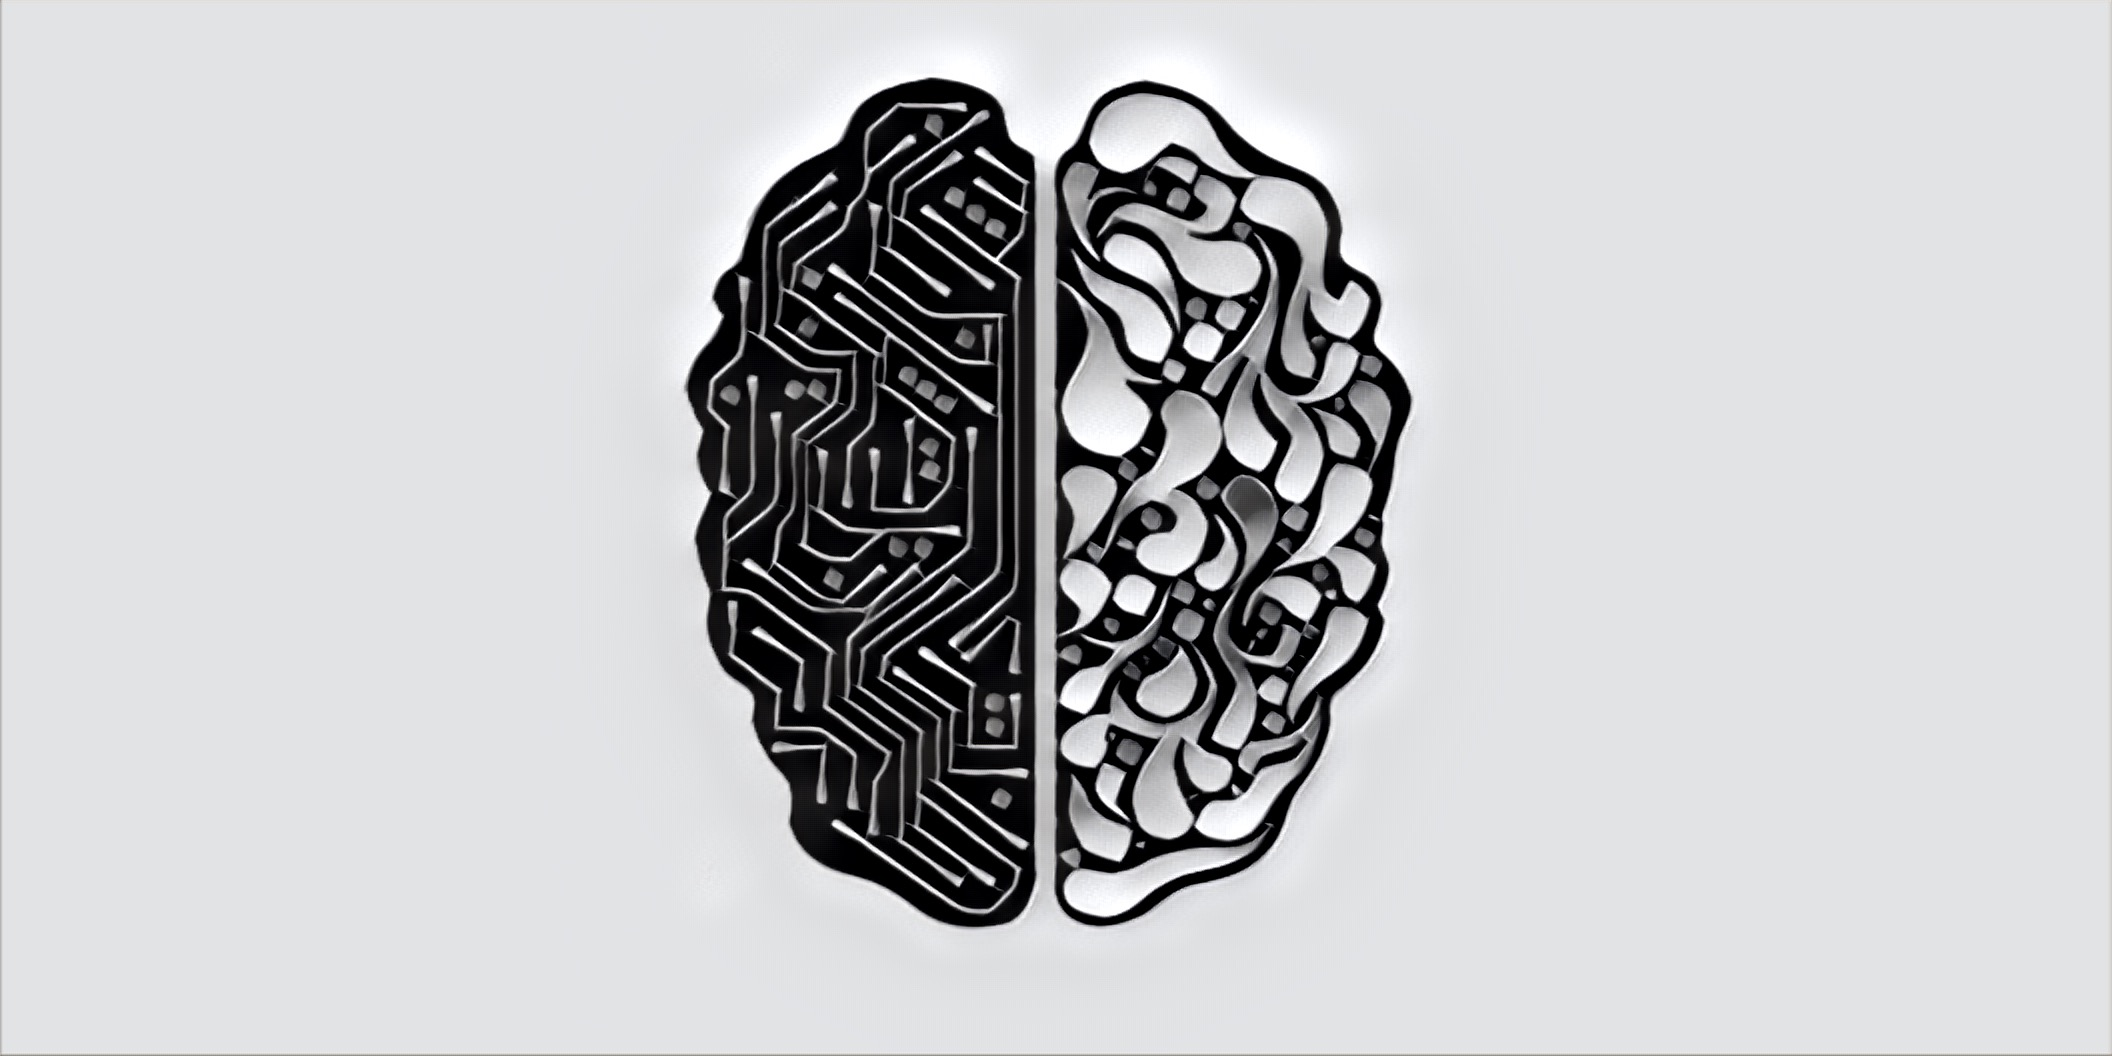 Become Tech Savvy Brain - Black and White